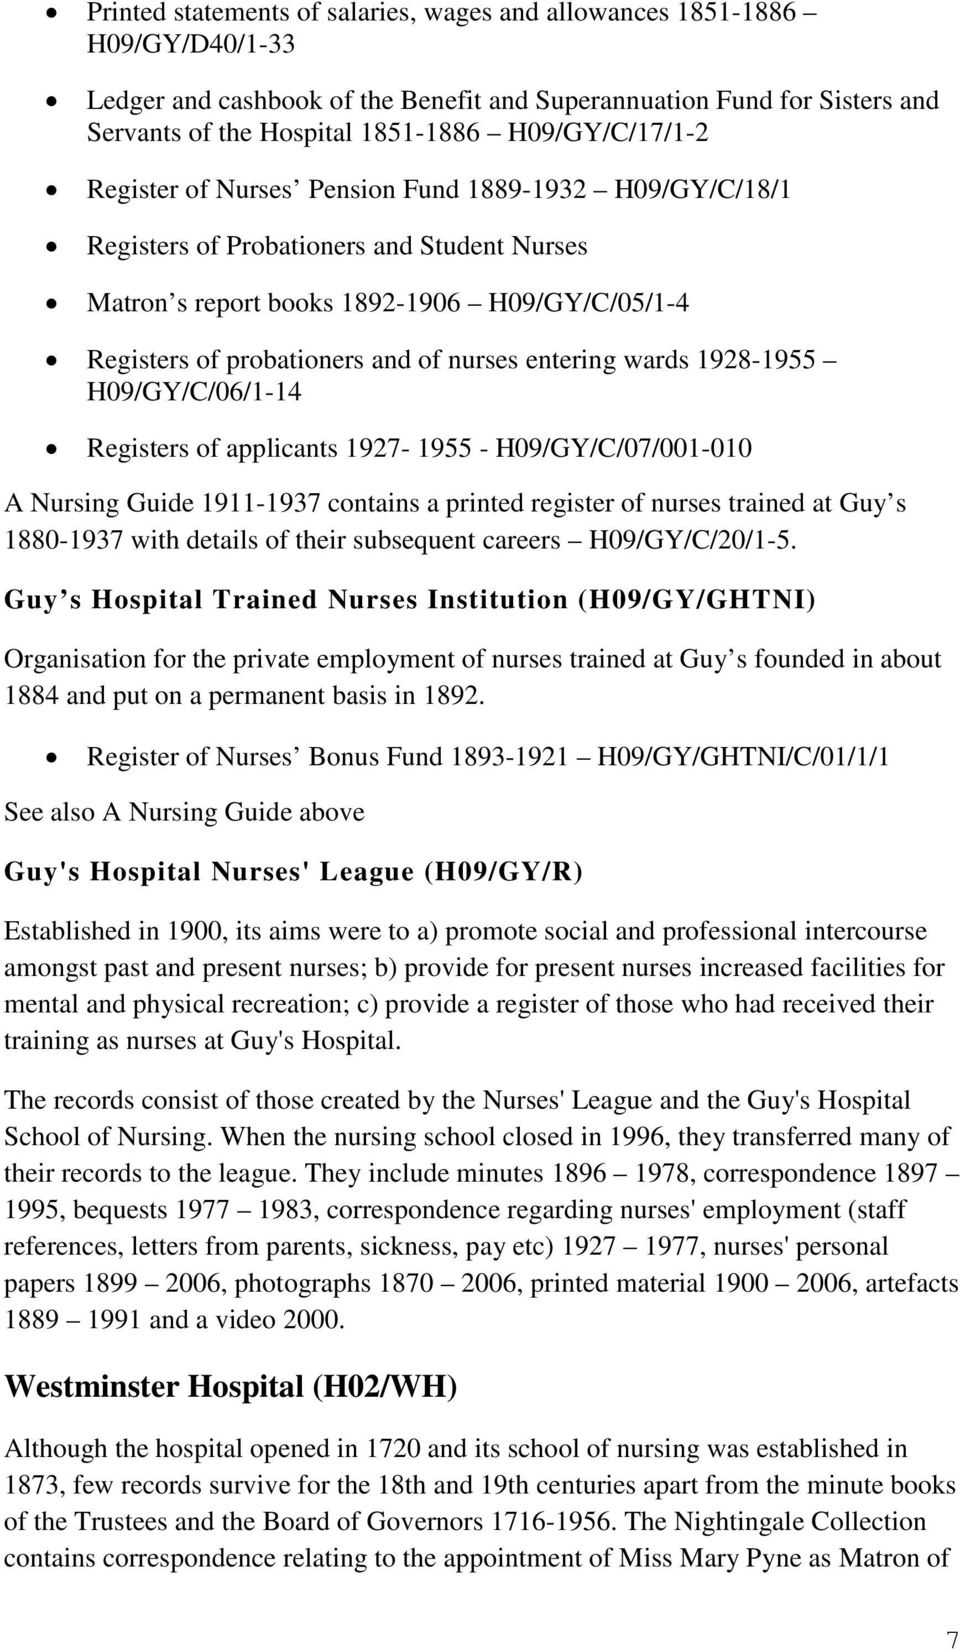 nurses entering wards 1928-1955 H09/GY/C/06/1-14 Registers of applicants 1927-1955 - H09/GY/C/07/001-010 A Nursing Guide 1911-1937 contains a printed register of nurses trained at Guy s 1880-1937